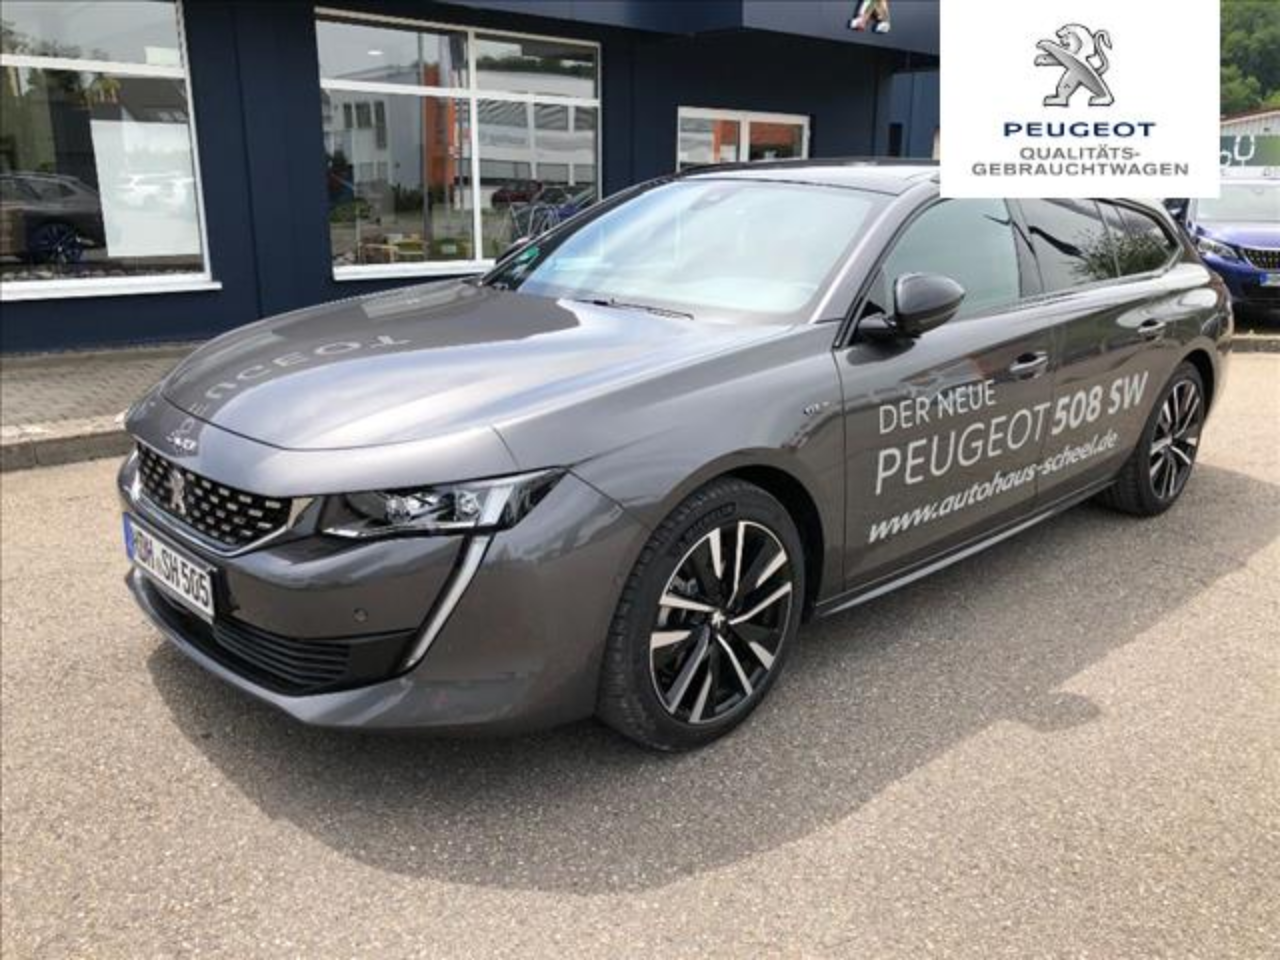 Peugeot 508 SW BlueHDi 180 EAT8 GT Navi Panorama Dach